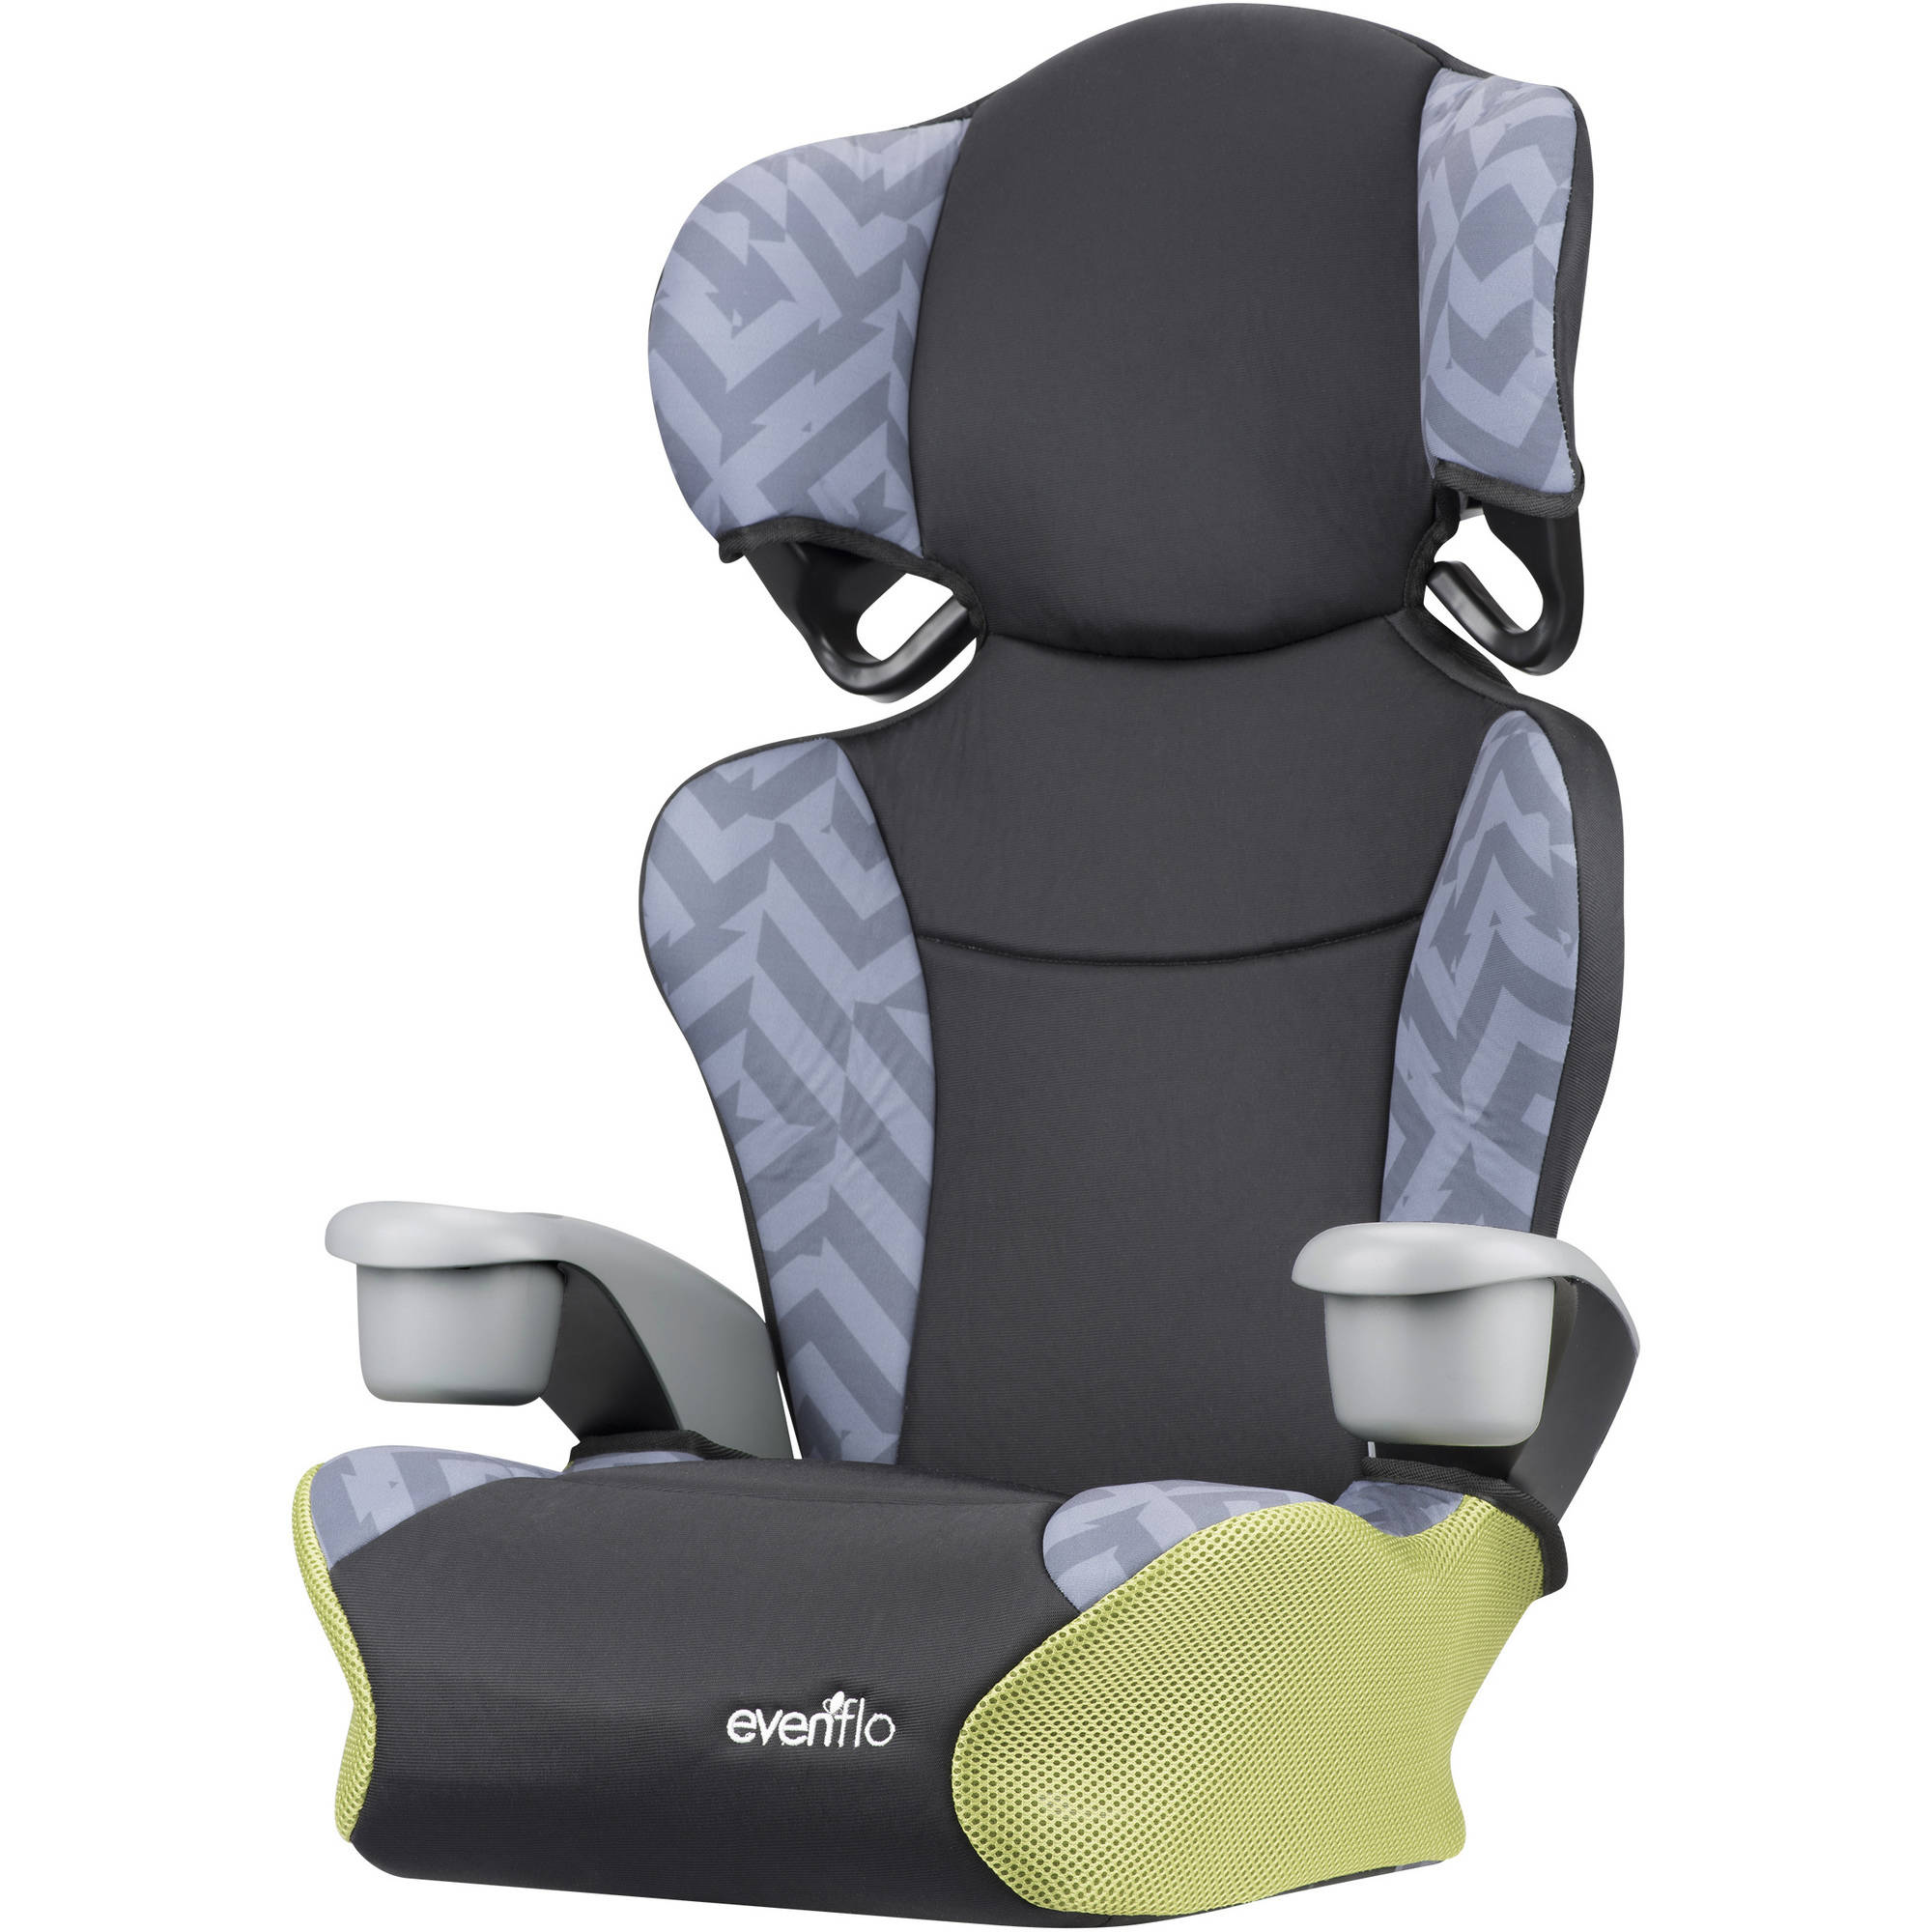 Evenflo Big Kid Sport High Back Booster Car Seat, choose your color